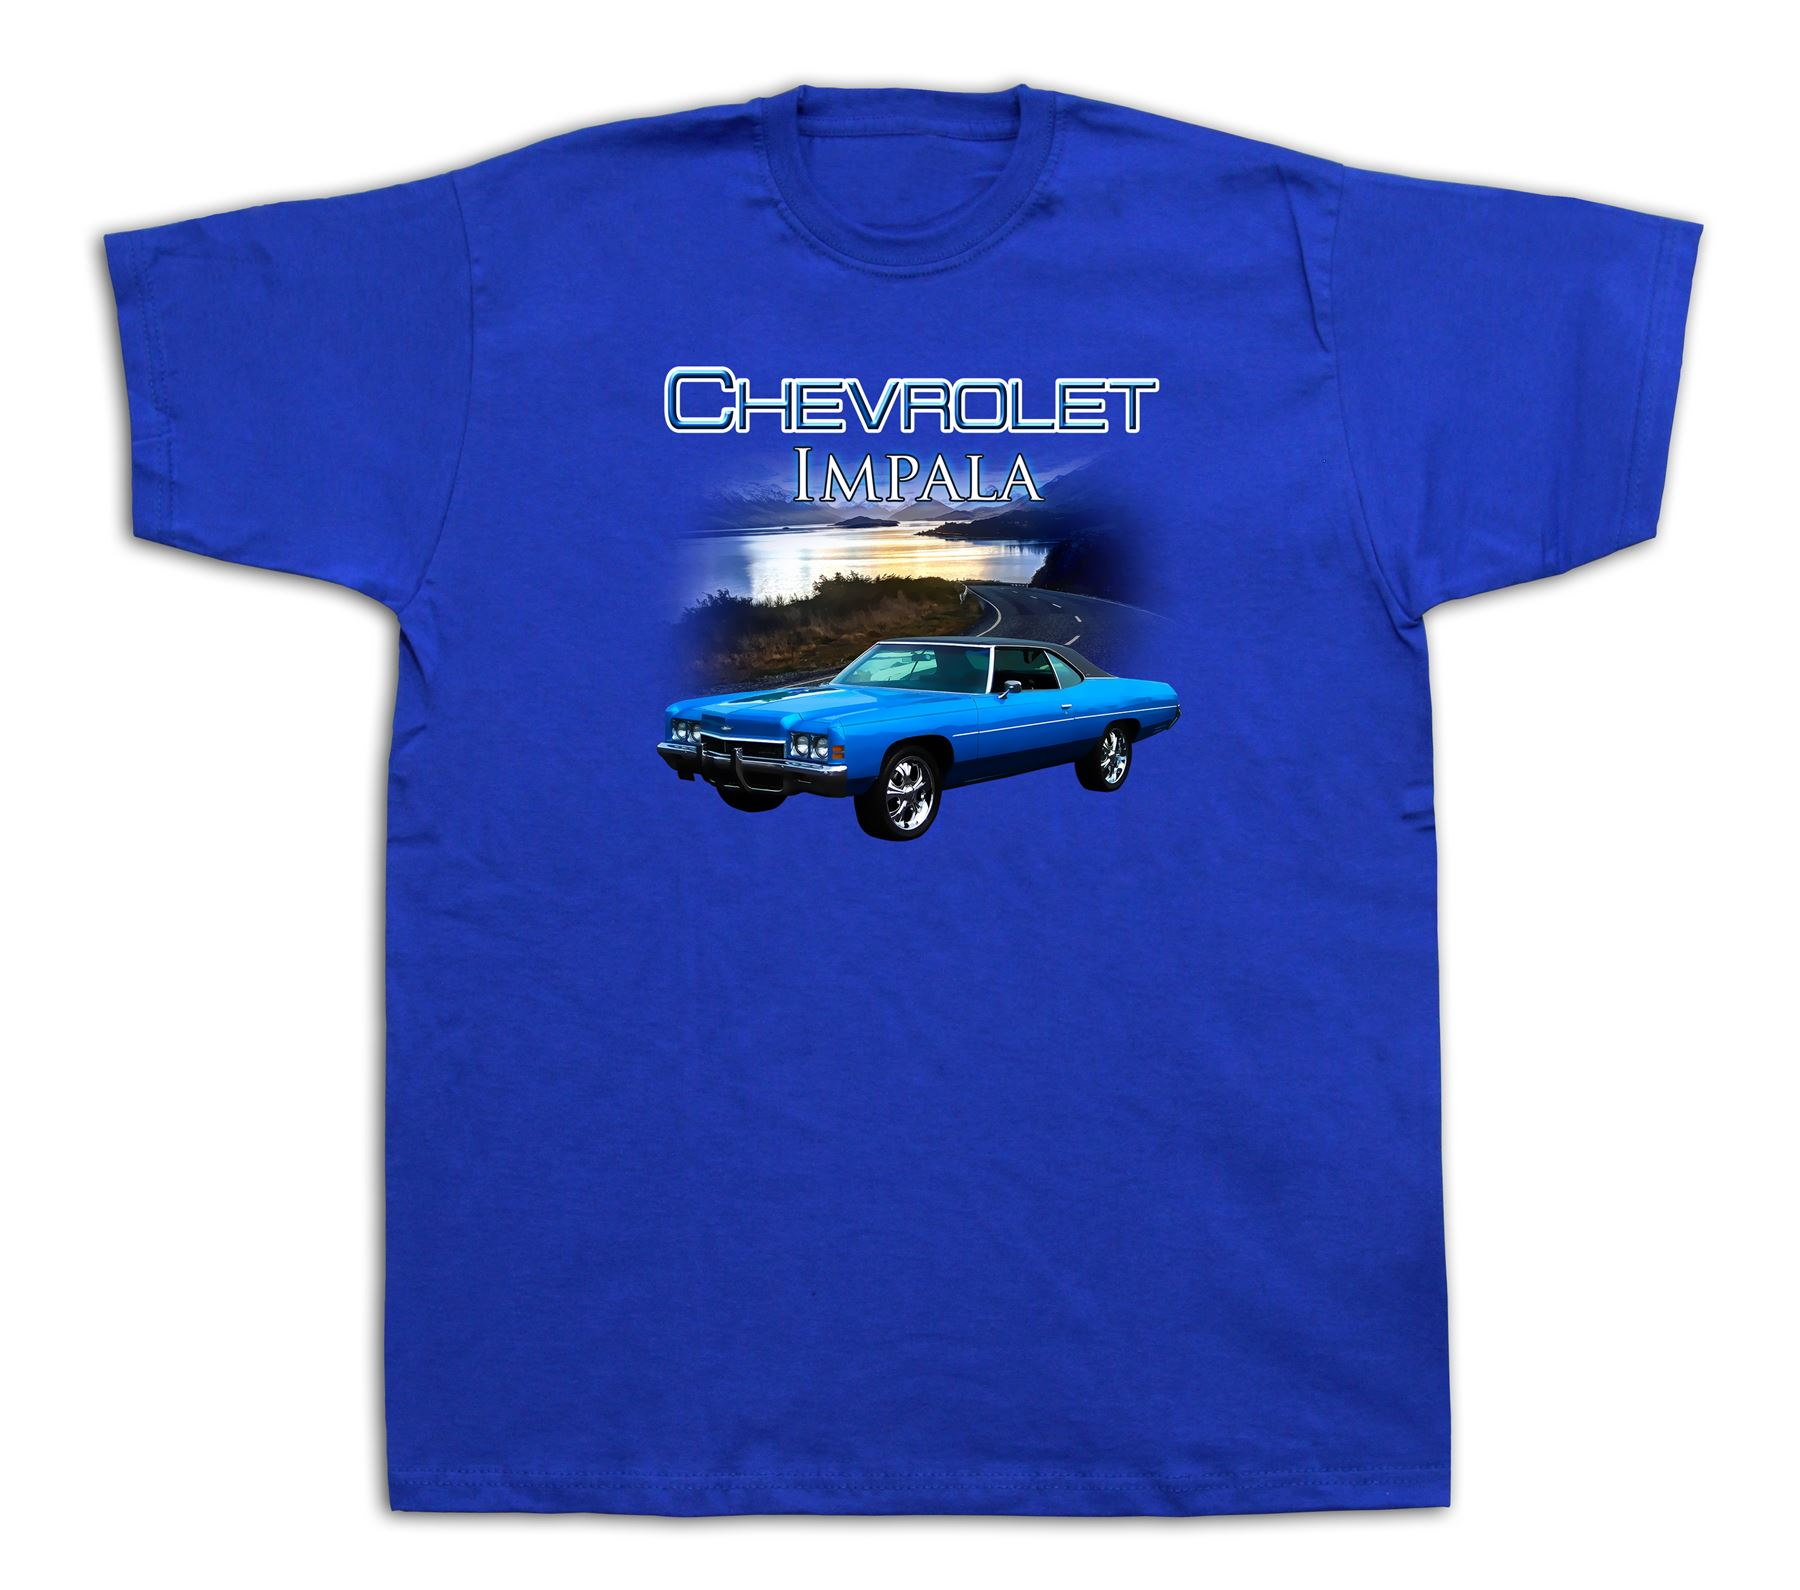 1972 chevrolet chevy impala beach sun tshirts hot rod. Black Bedroom Furniture Sets. Home Design Ideas